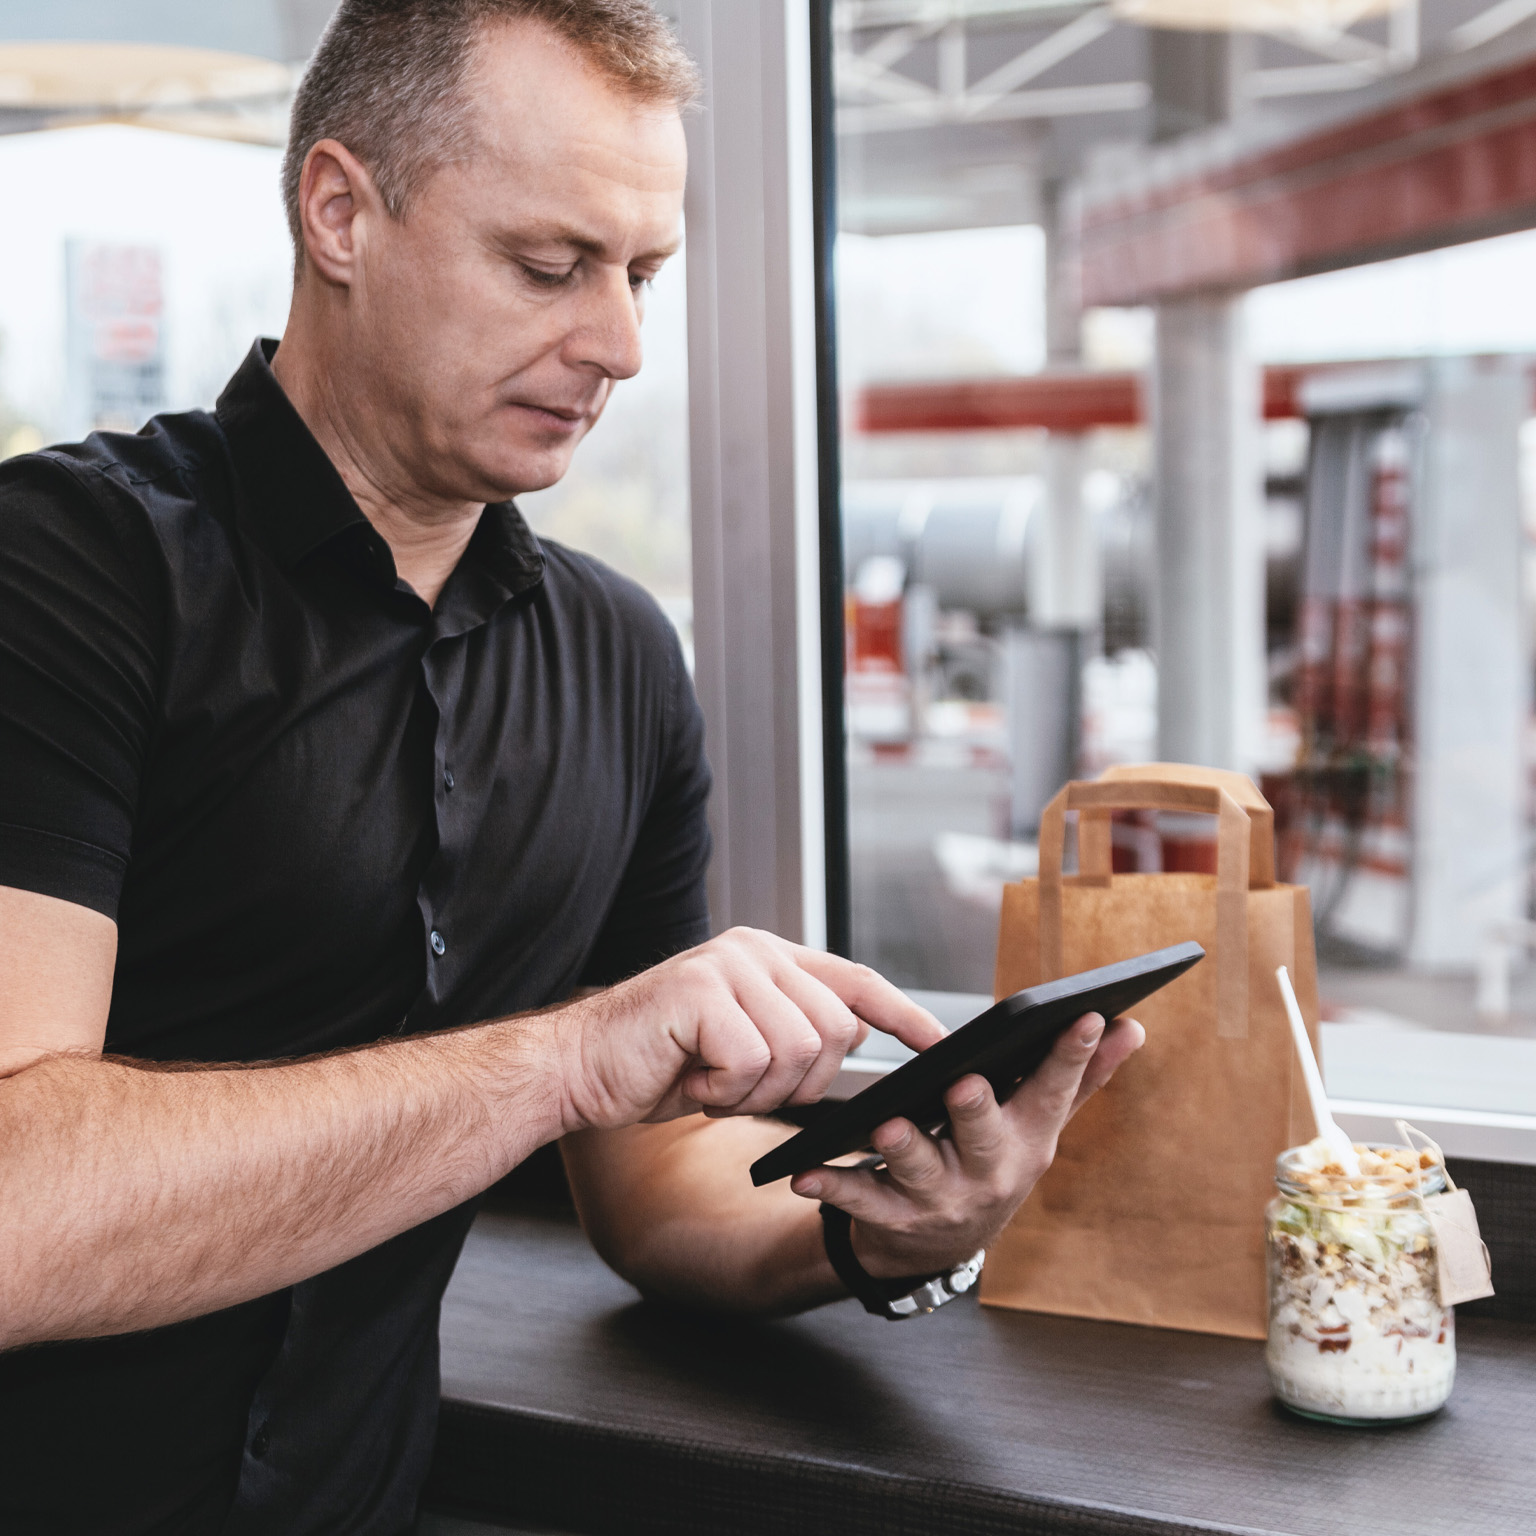 fuel-retail-in-the-age-of-new-mobility